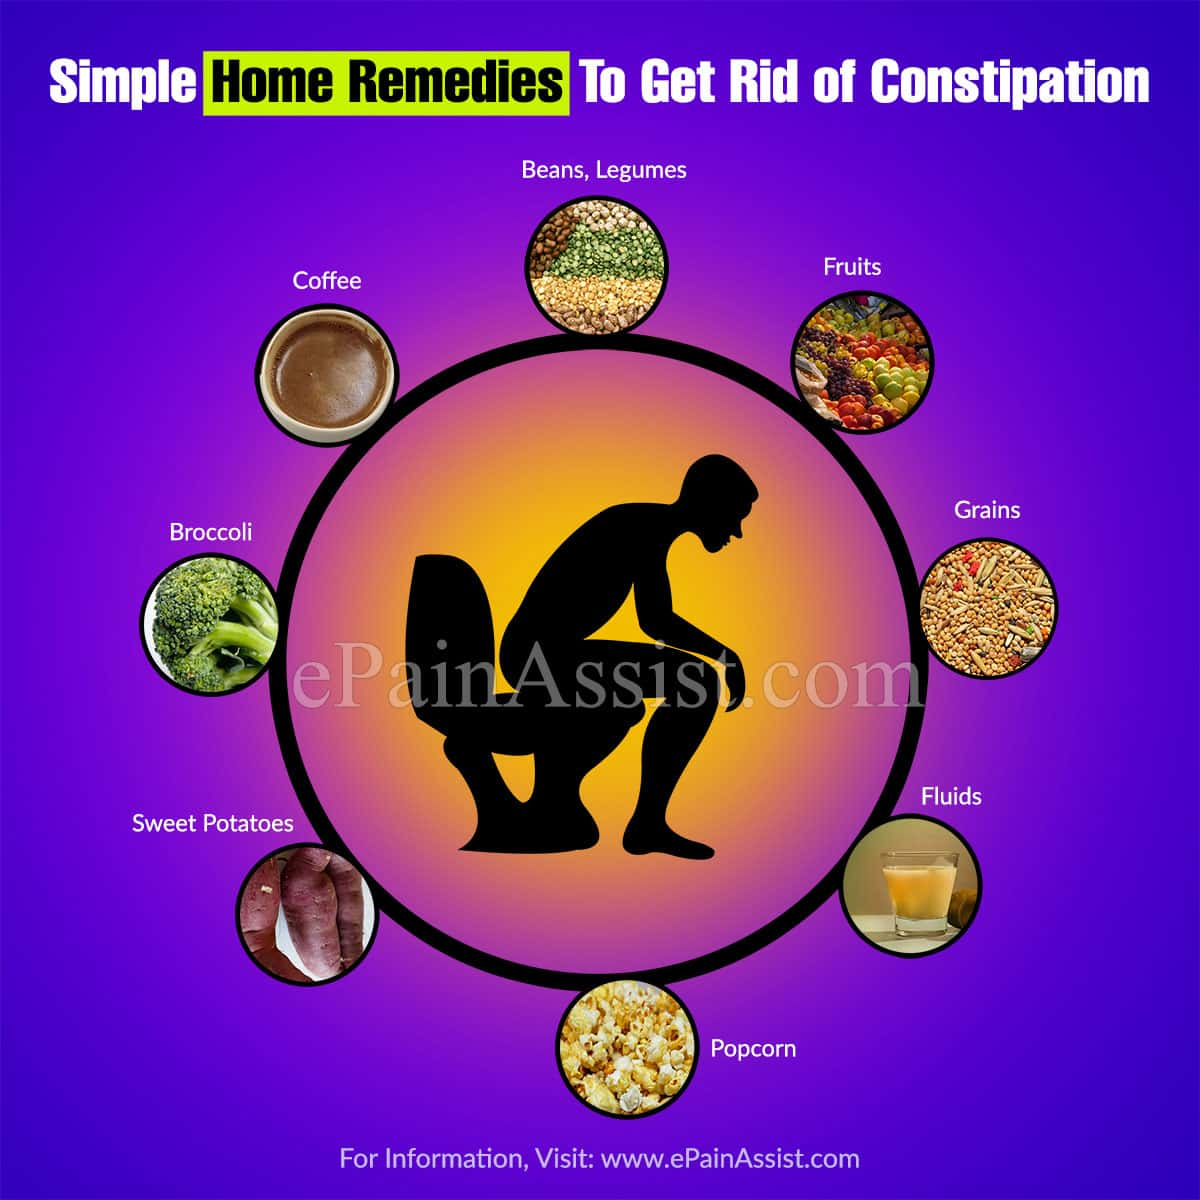 Simple Home Remedies To Get Rid of Constipation